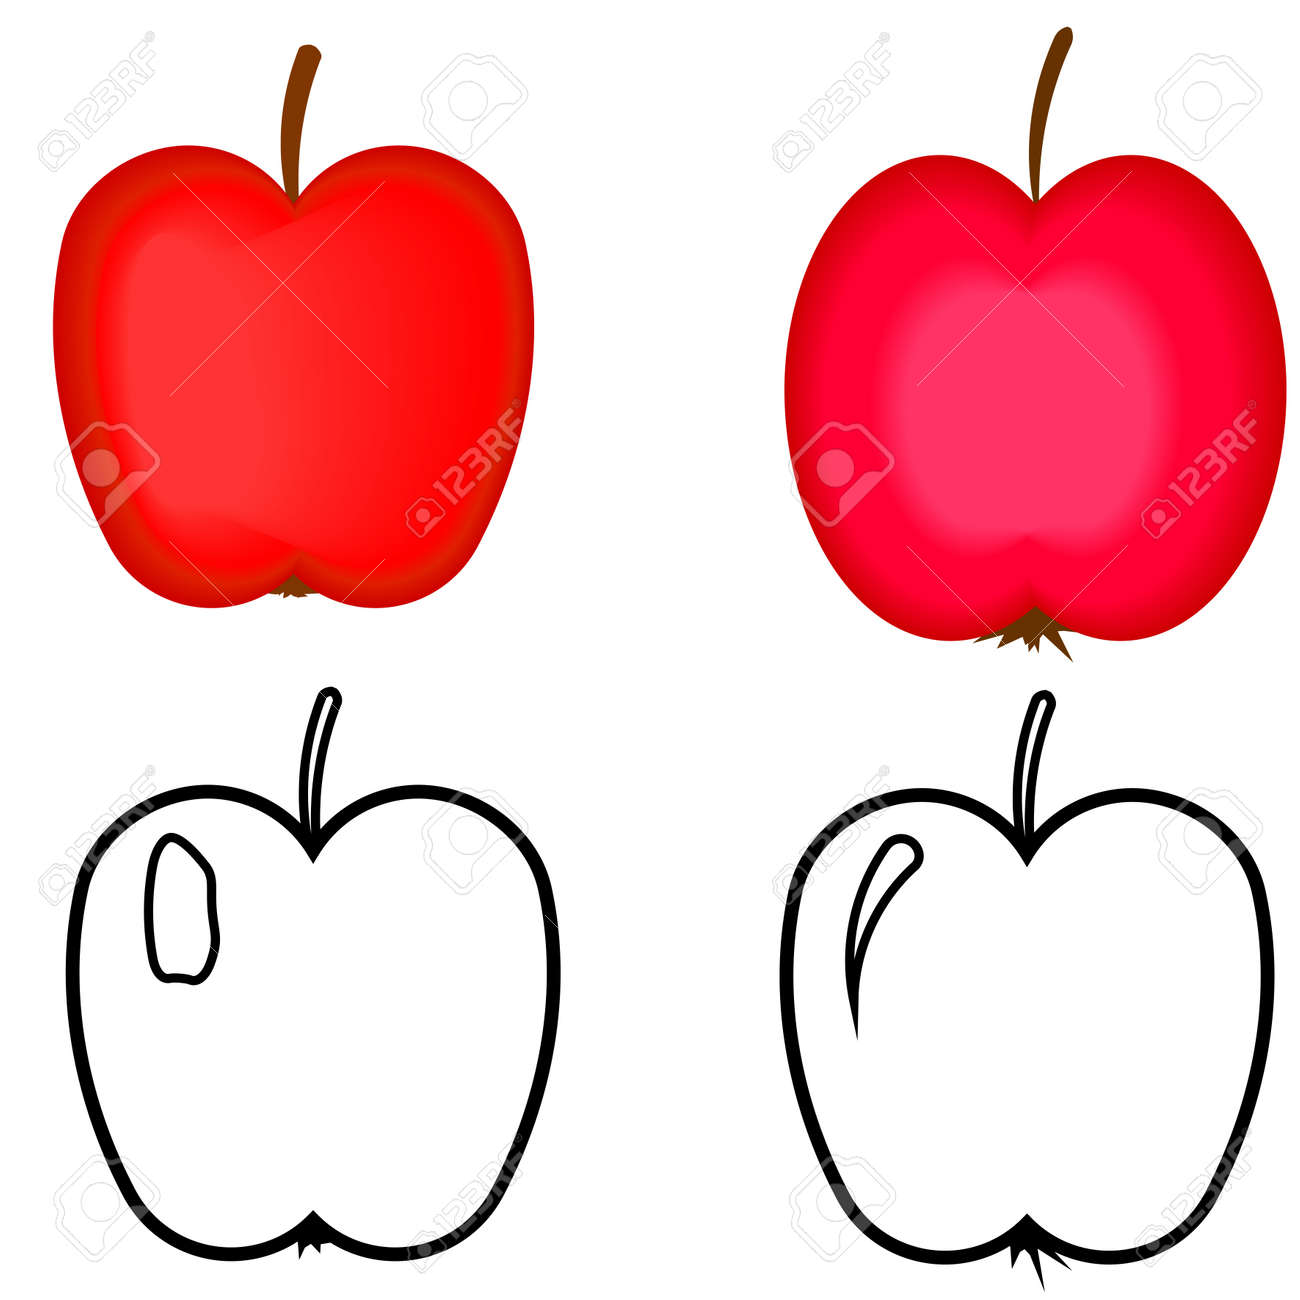 Set Of Red Apples Apples For Coloring Book Royalty Free Klipartlar